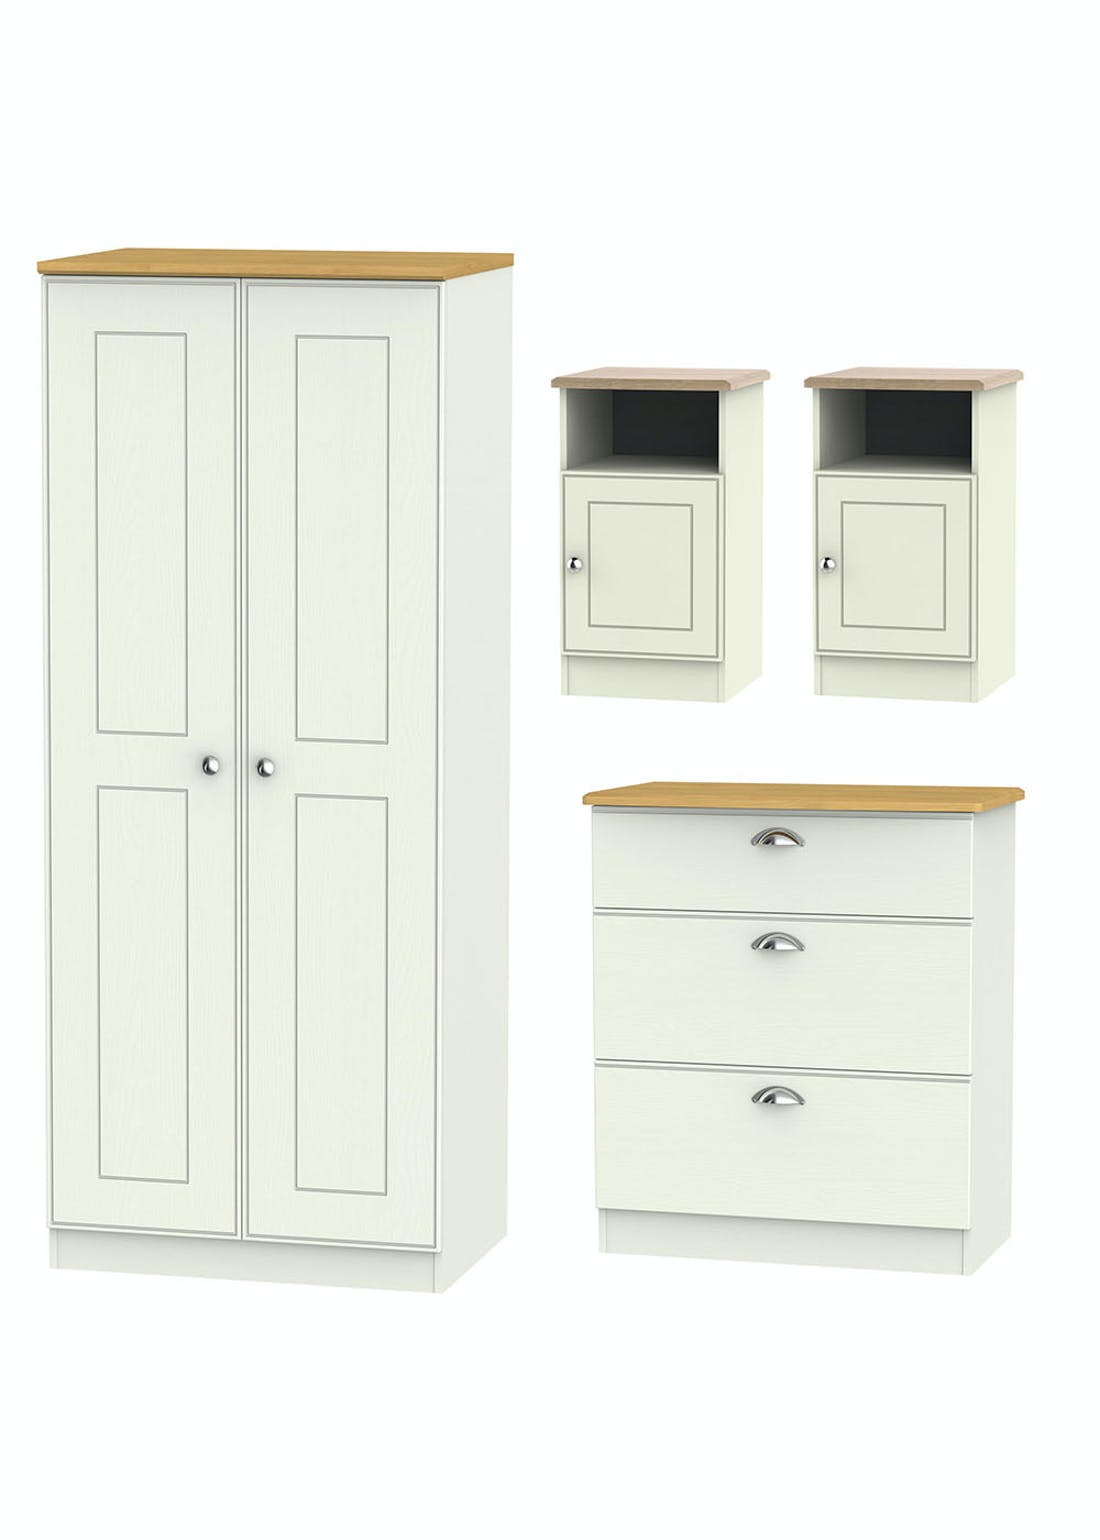 Swift Stamford 4 Piece Bedroom Furniture Collection